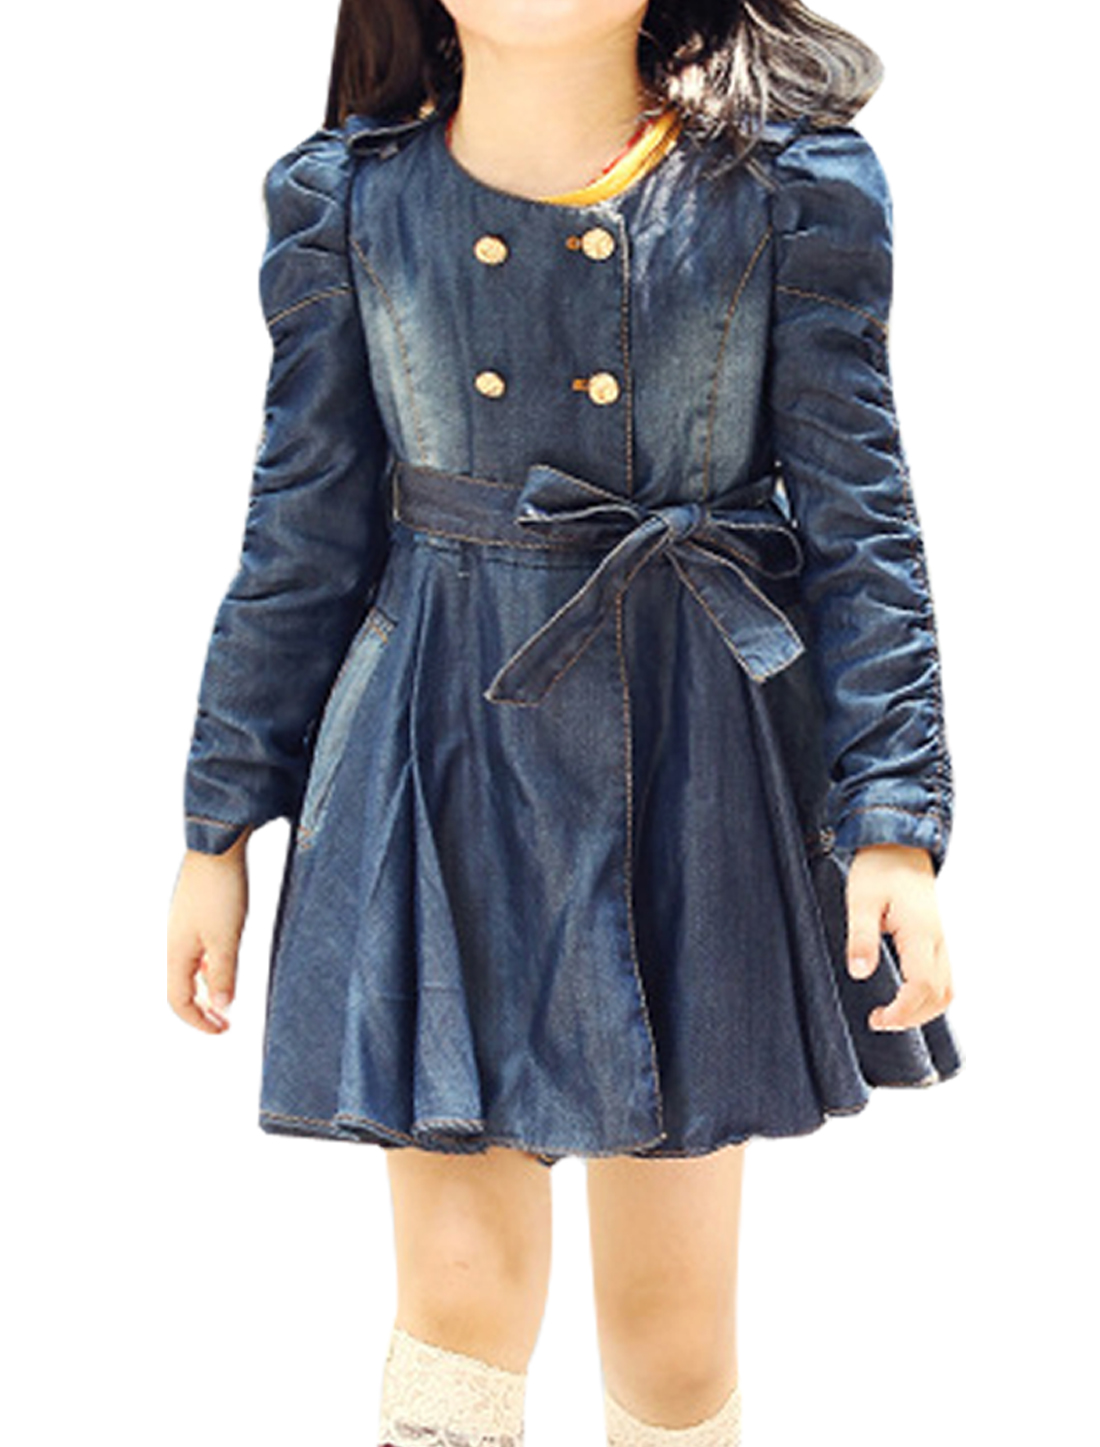 Girl Double-Breasted Front Self-Bowtie Belt Design Navy Blue Trench Coat 6